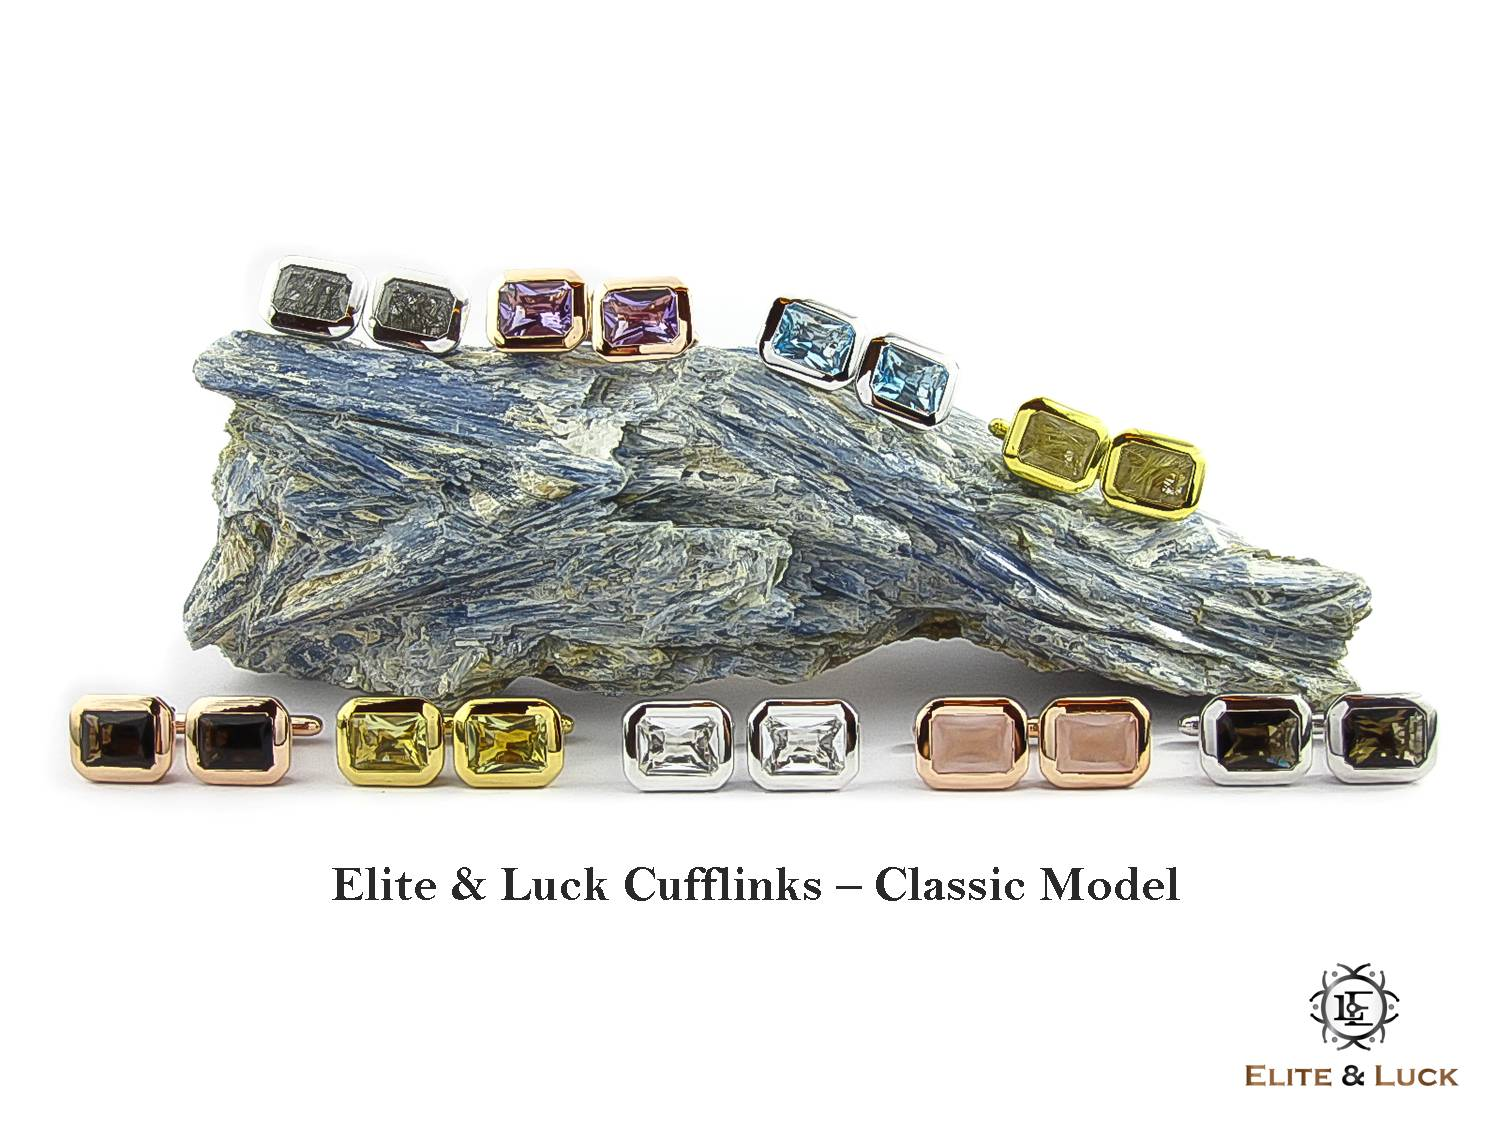 Elite & Luck Gemstone Cufflinks for Men, Classic Model